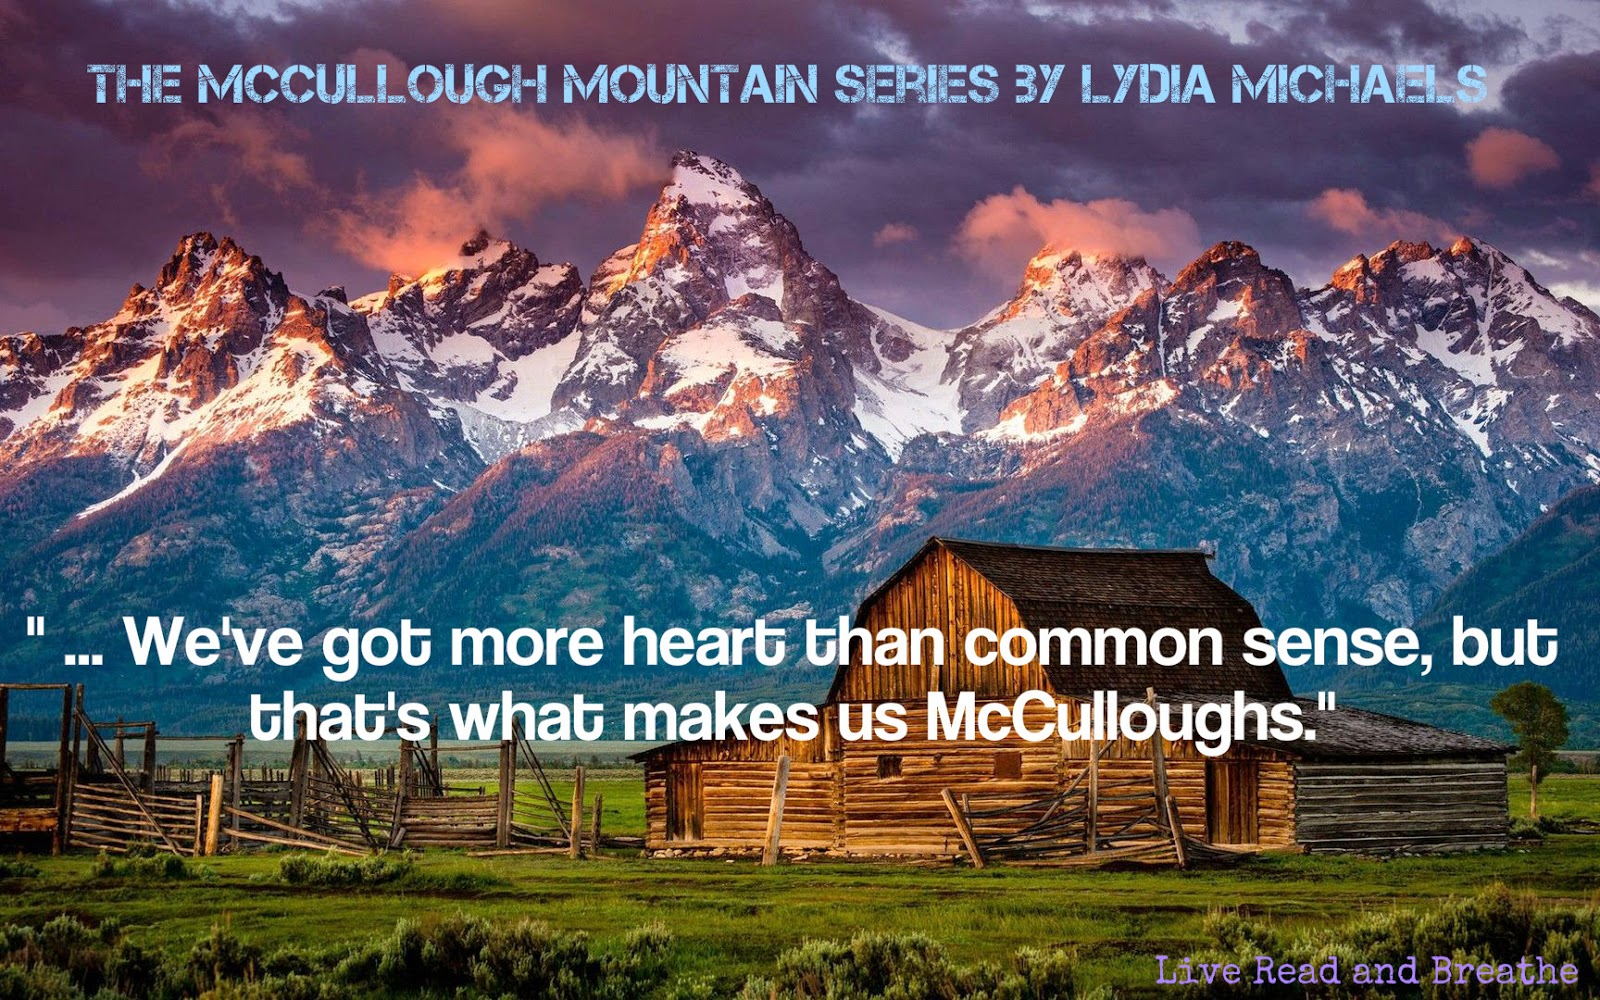 http://livereadbreathe.blogspot.ca/2014/12/the-mccullough-mountain-series-by-lydia.html